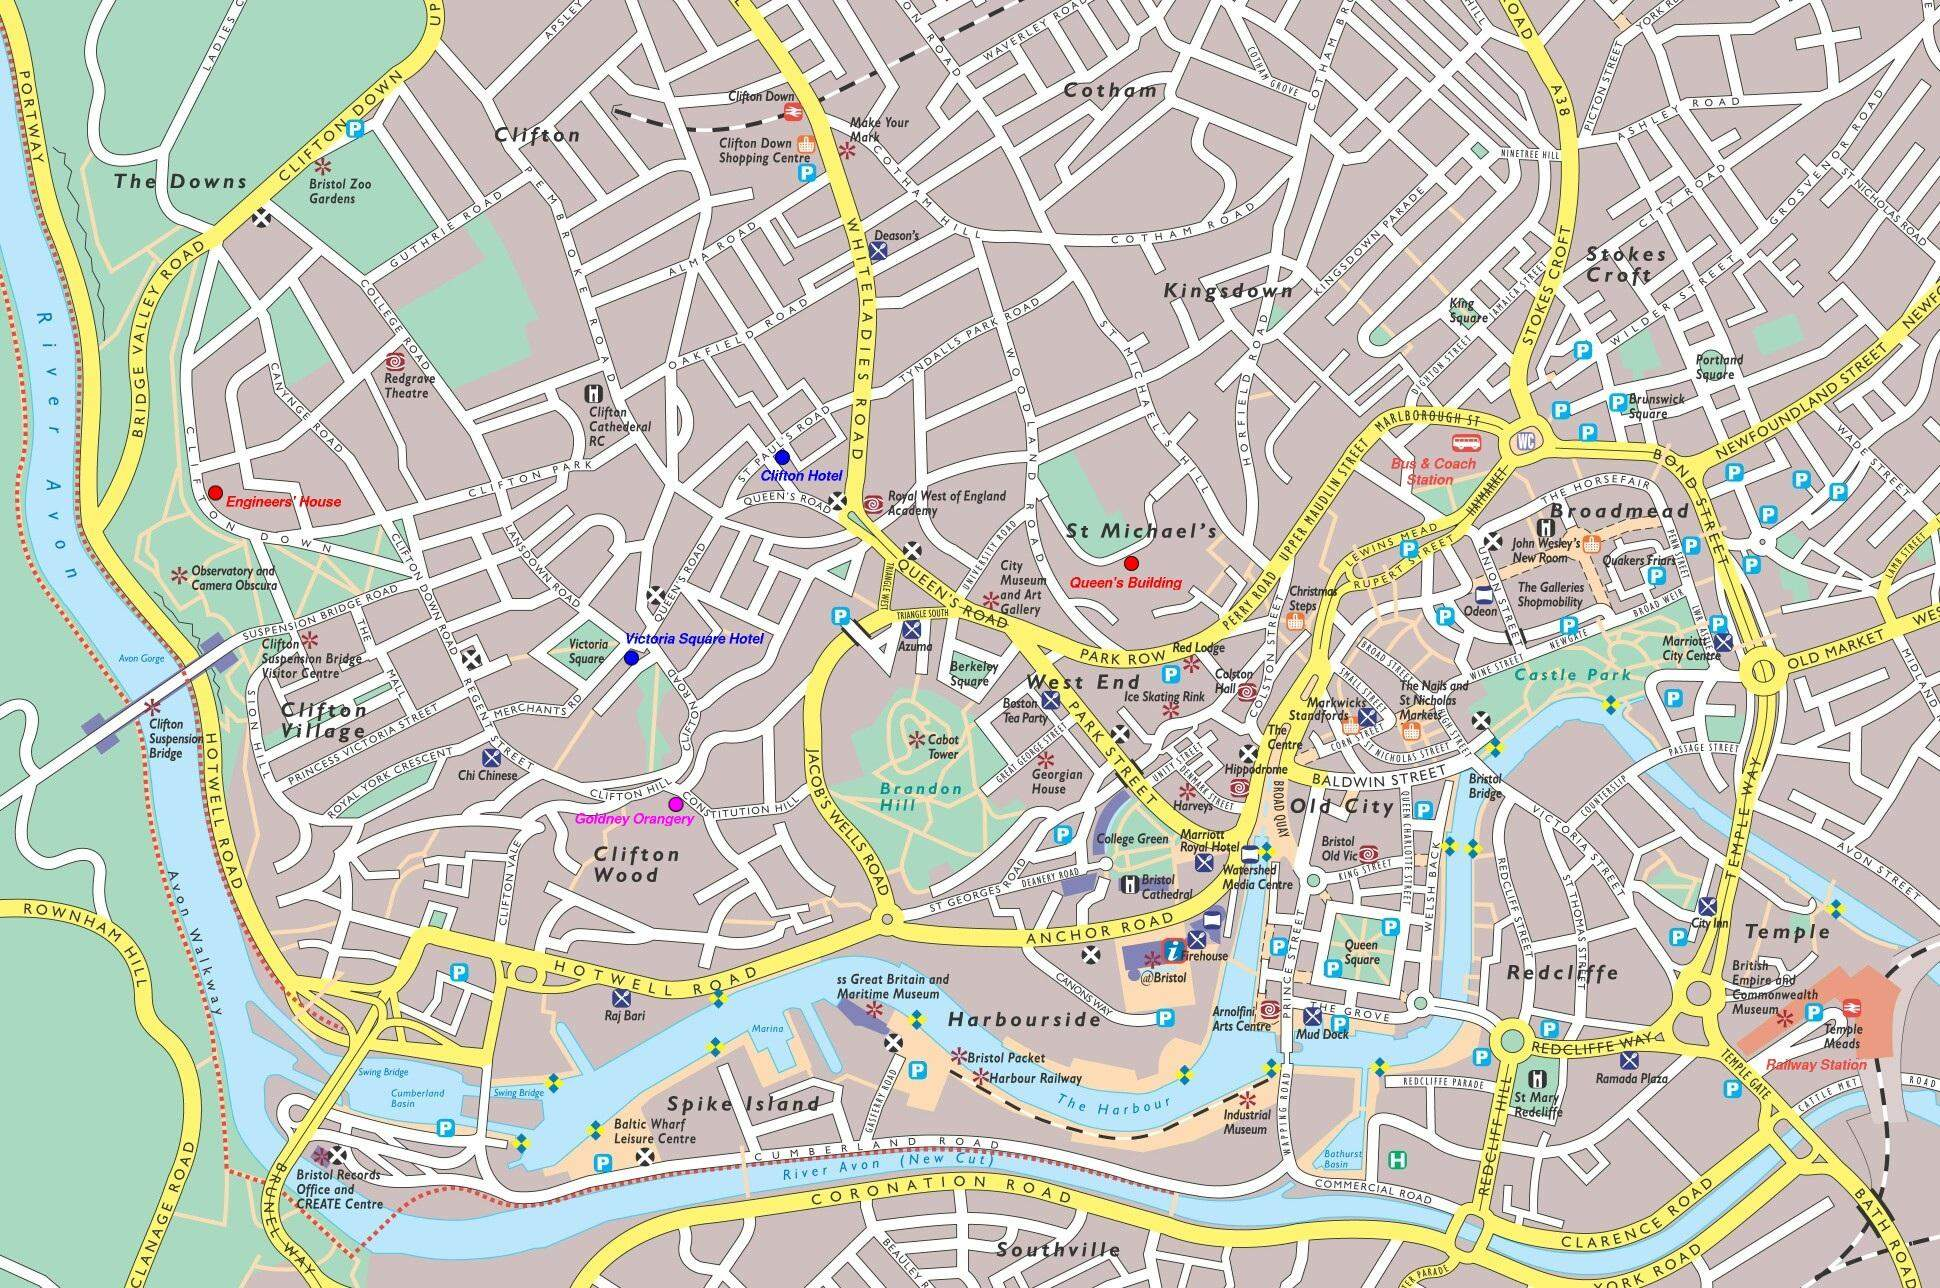 Map Of Uk Bristol.Large Bristol Maps For Free Download And Print High Resolution And